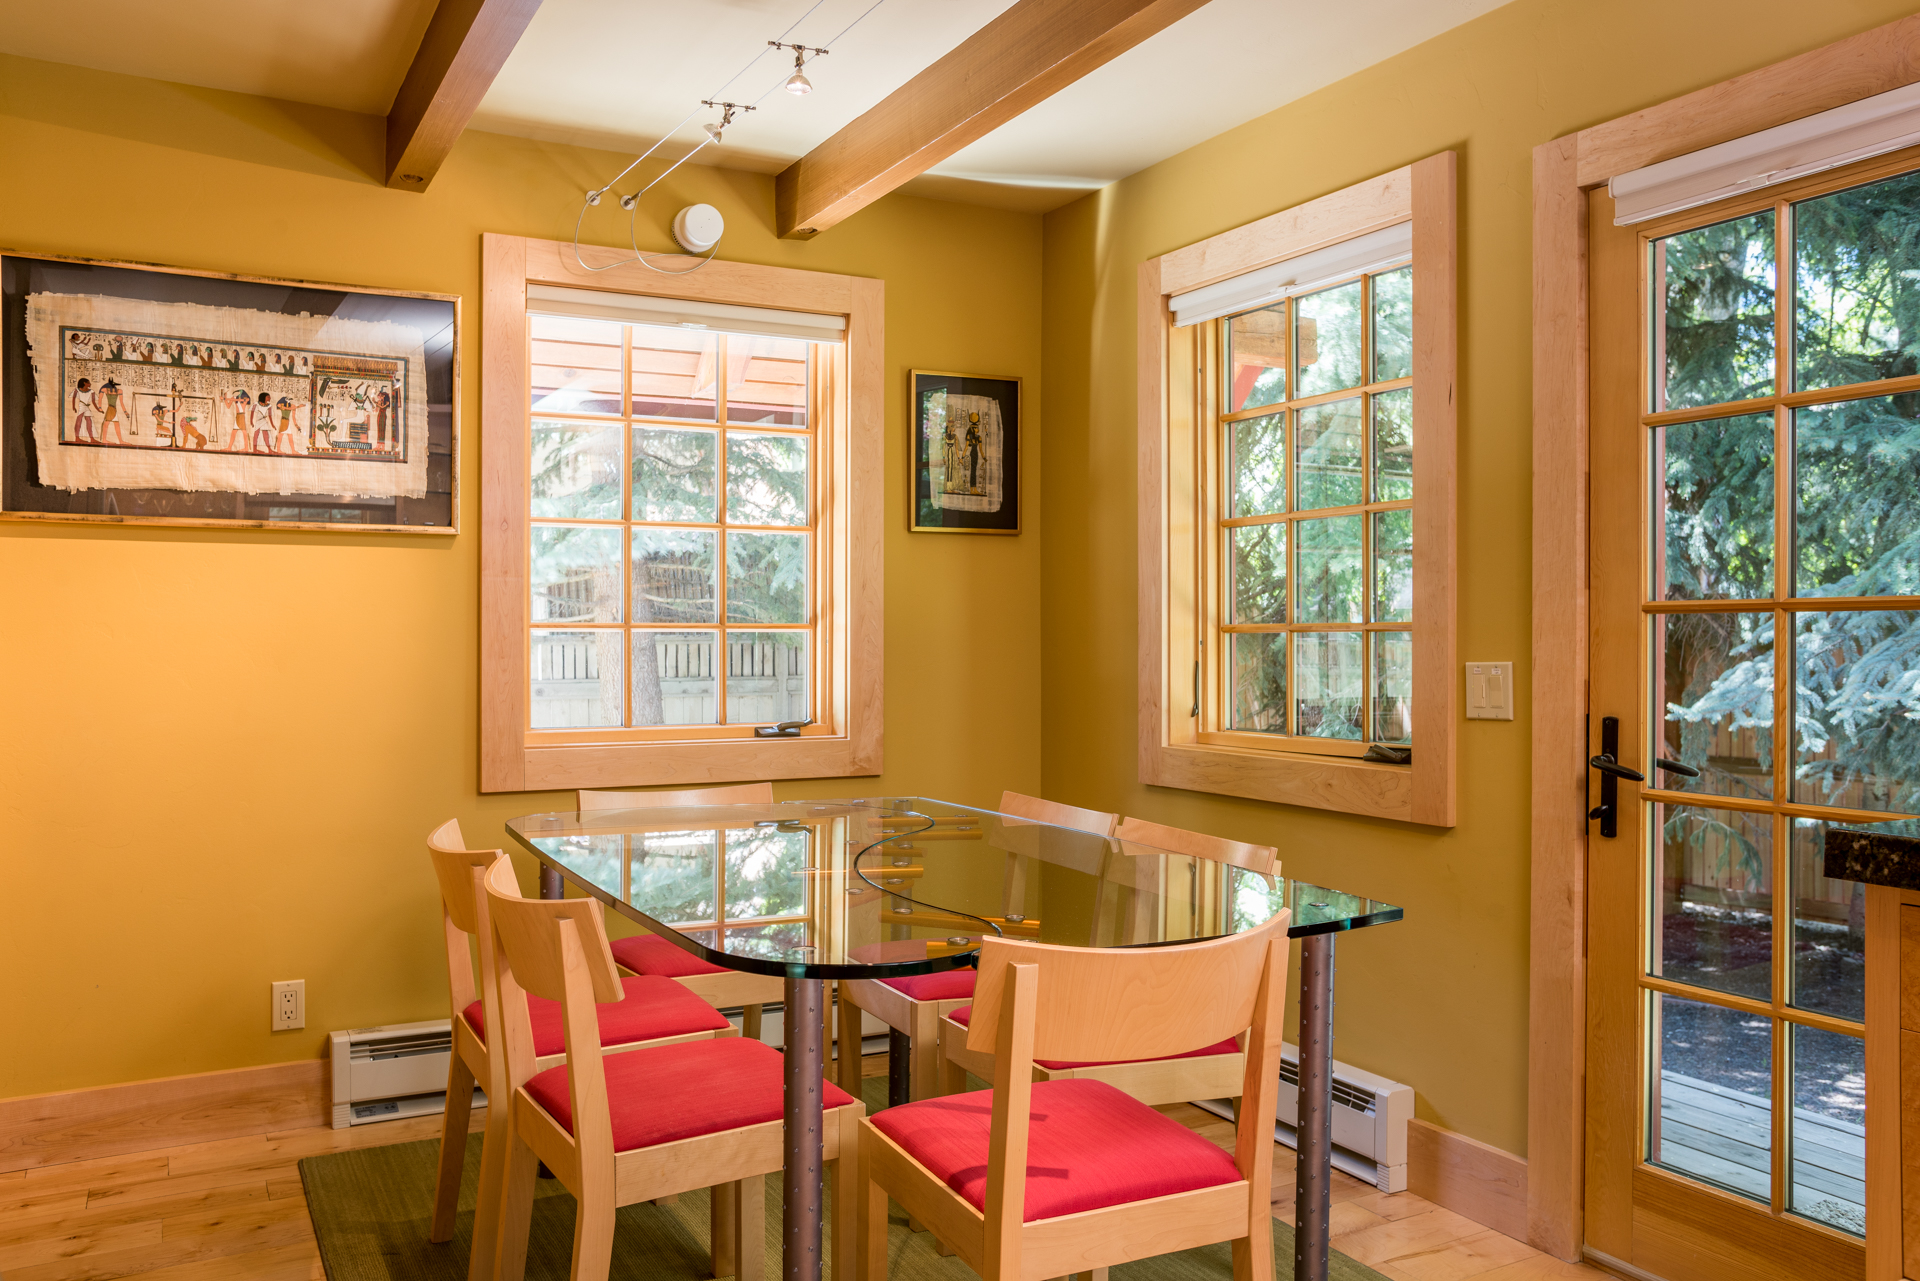 325 Bald Mountain Road in Warm Springs in Ketchum